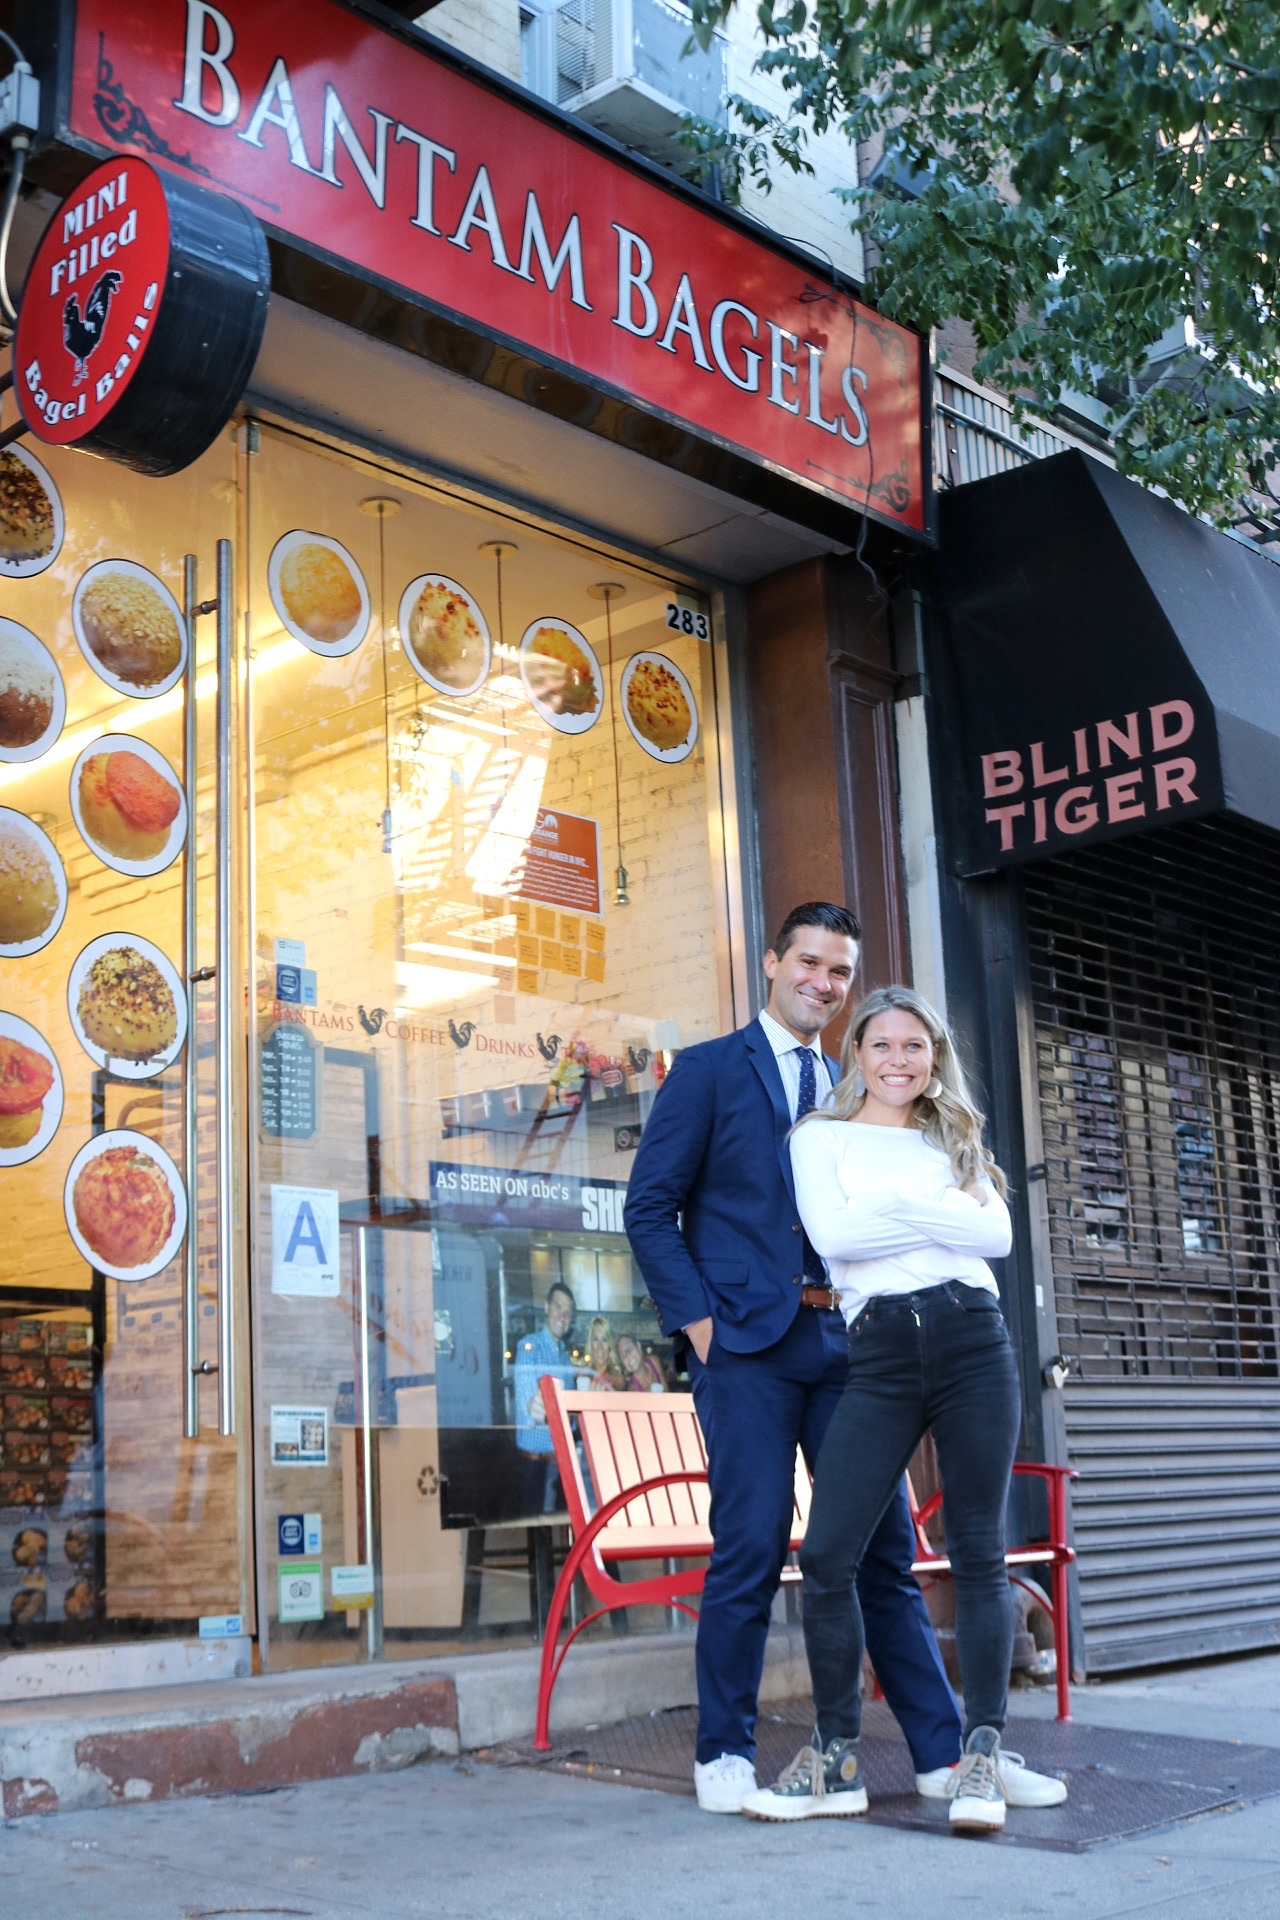 Elyse and Nick outside of their shop on Bleecker Street in New York City.